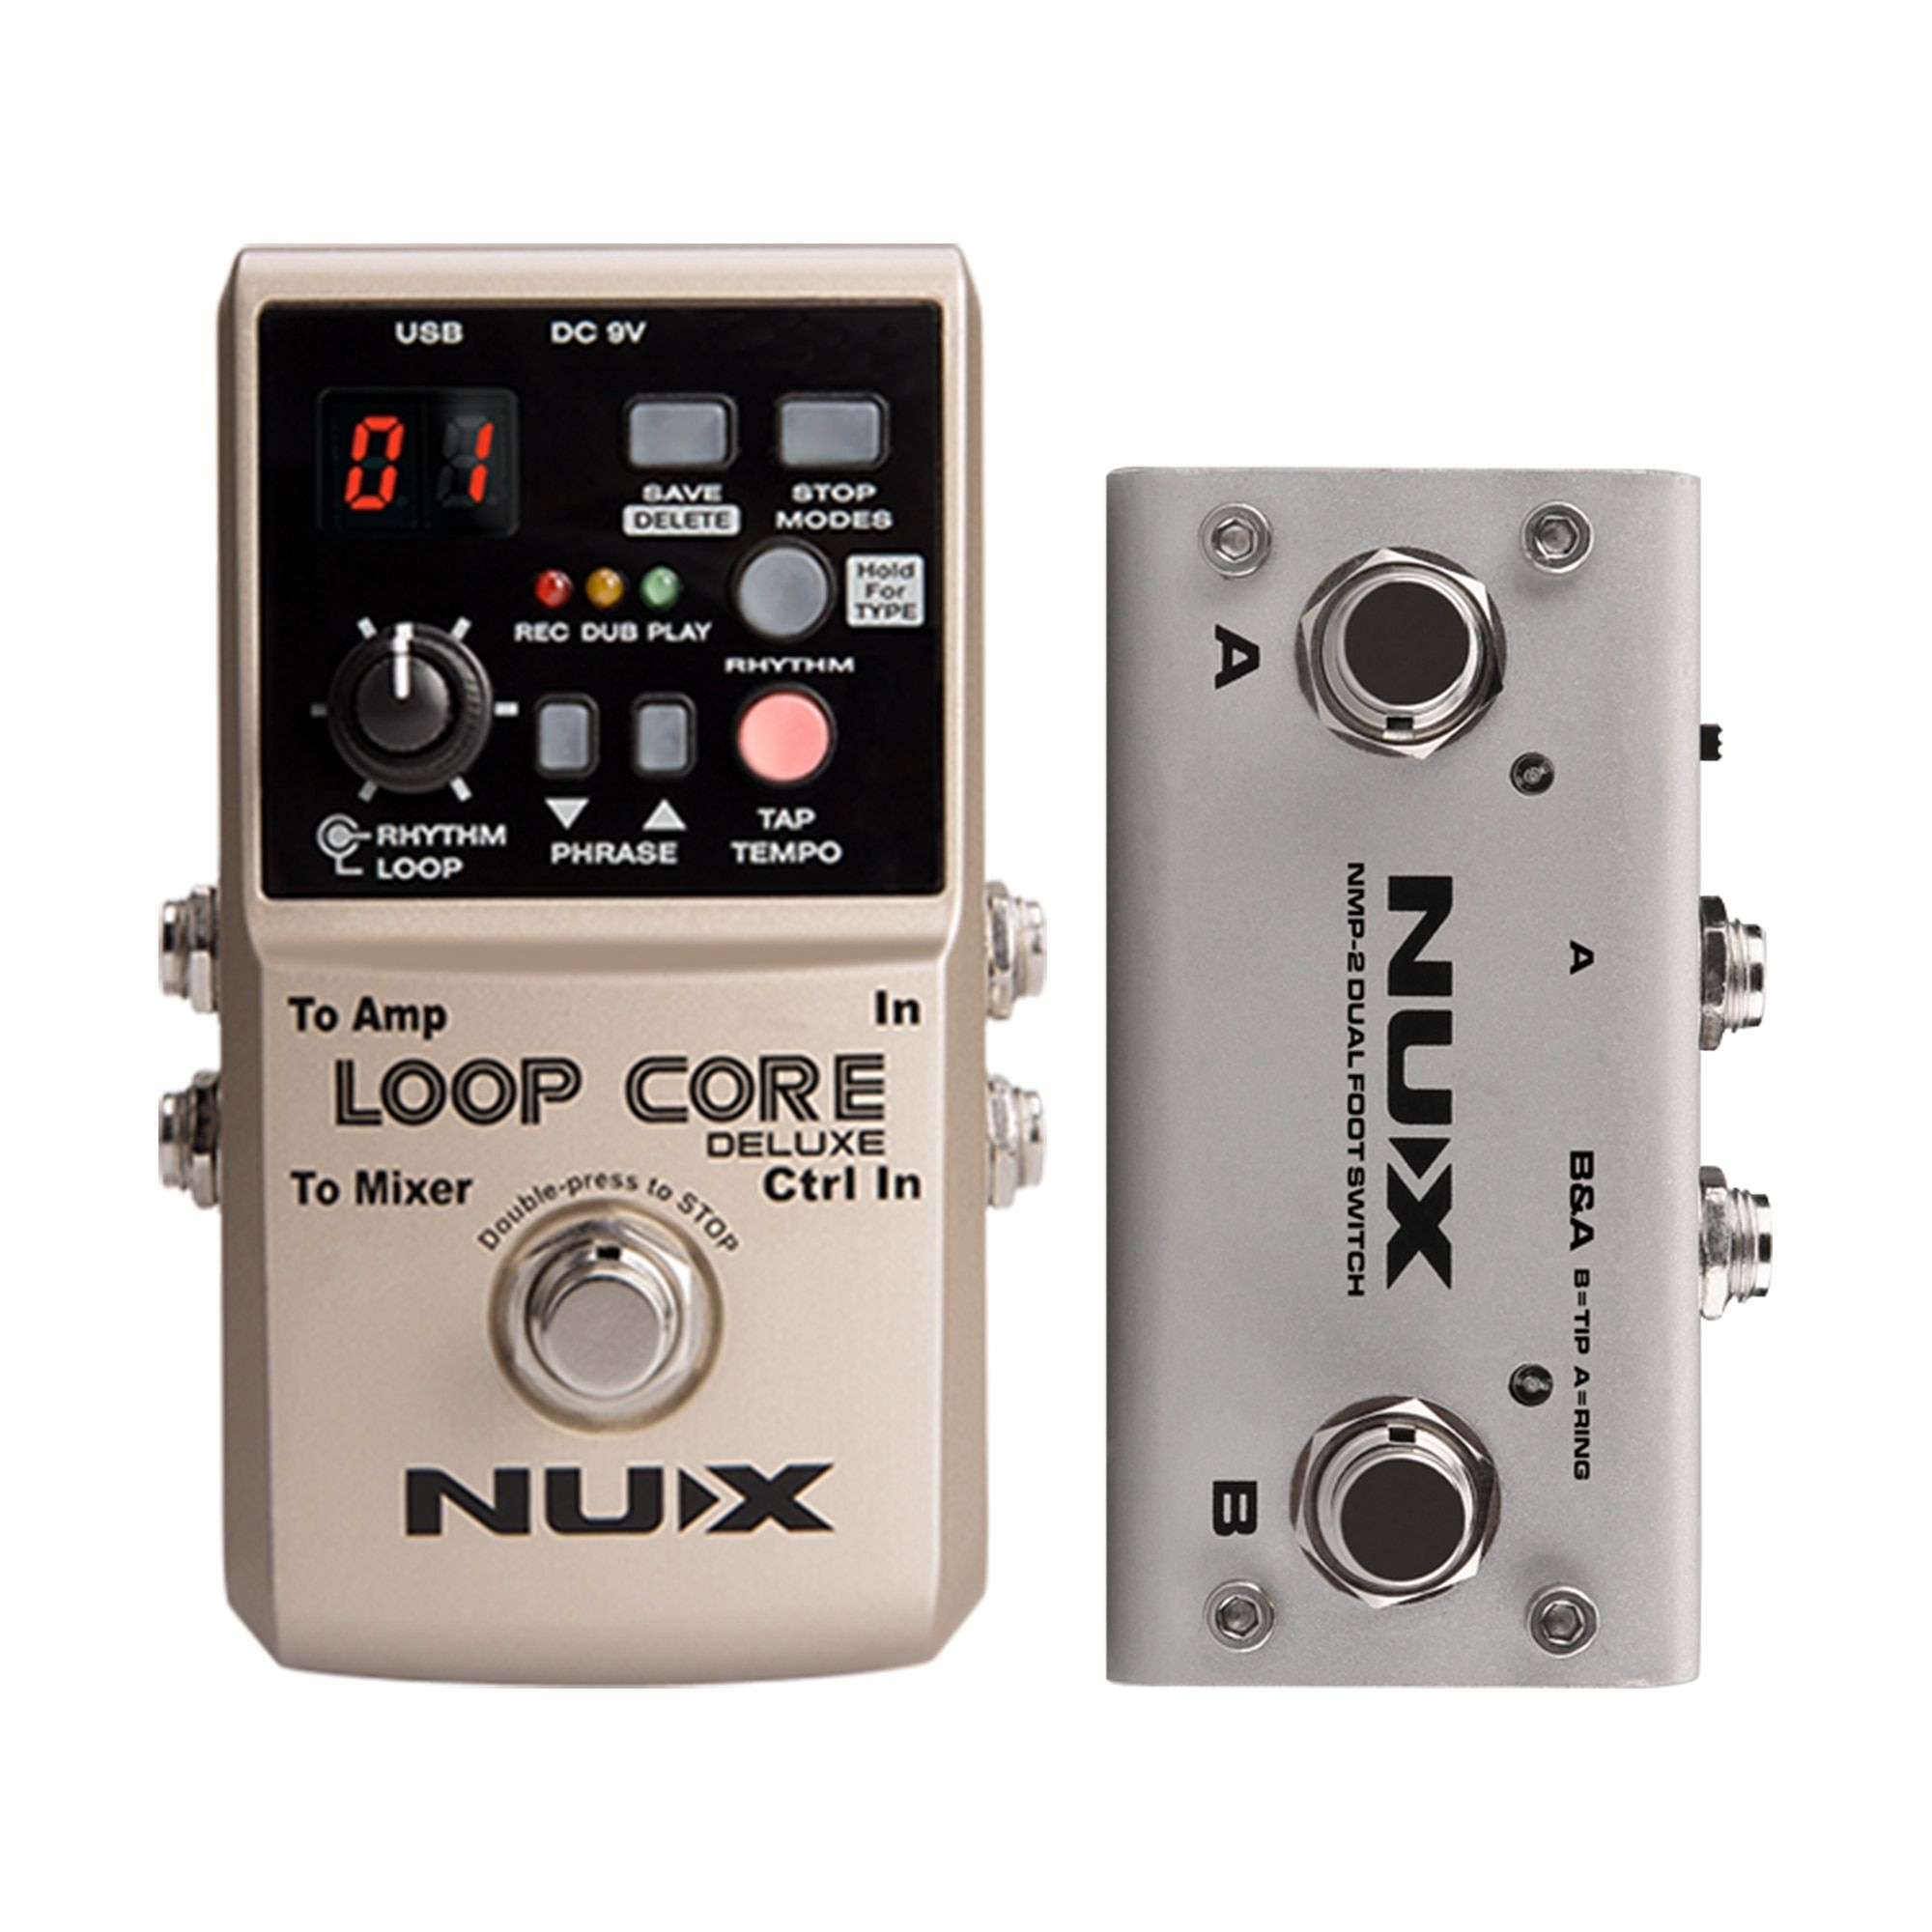 NUX Loop Core Deluxe Looper Pedal 40 different drum rhythms 8 Hours Record Loop Guitar Effect Stompbox with Dual FootSwitch